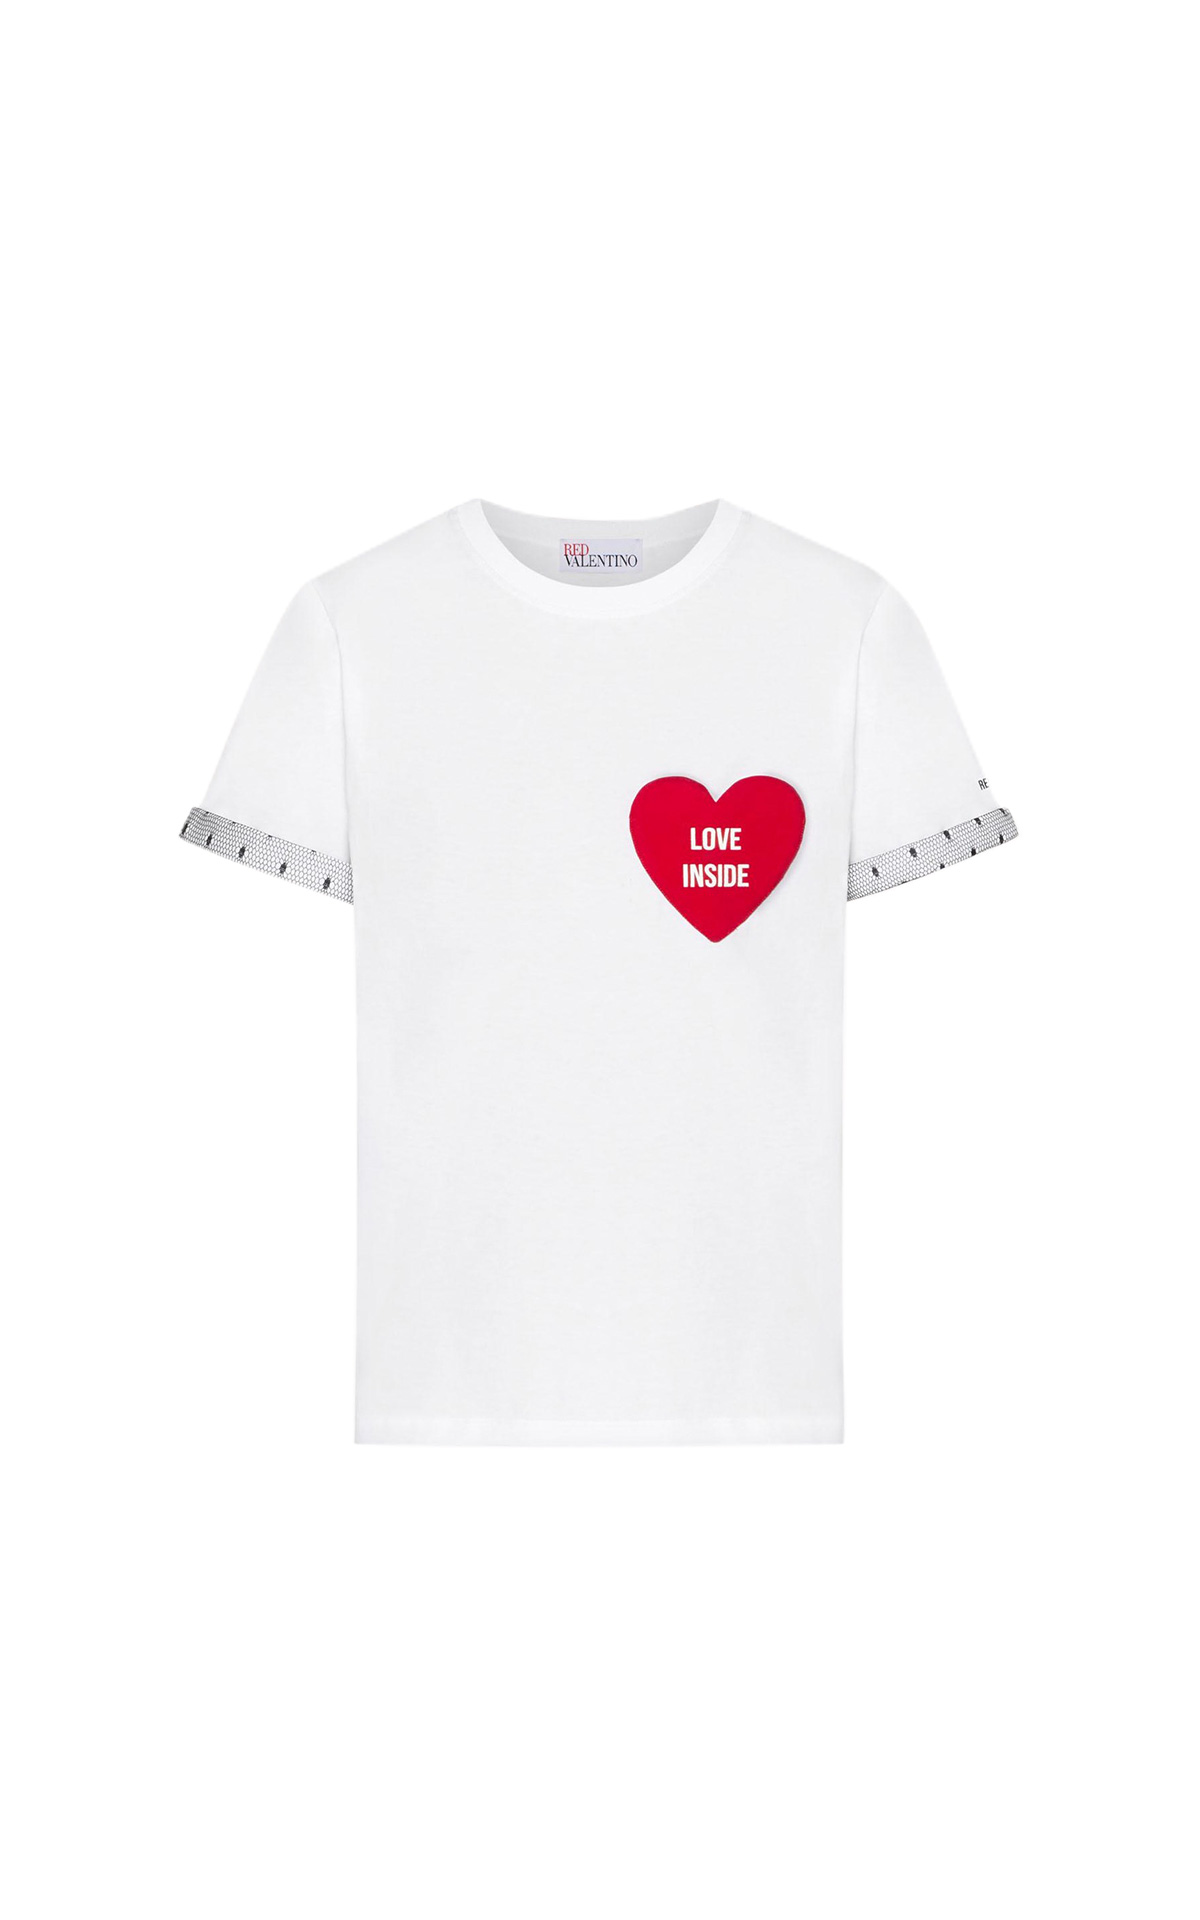 La Vallée Village REDValentino Special t-shirt for Valentine's Day